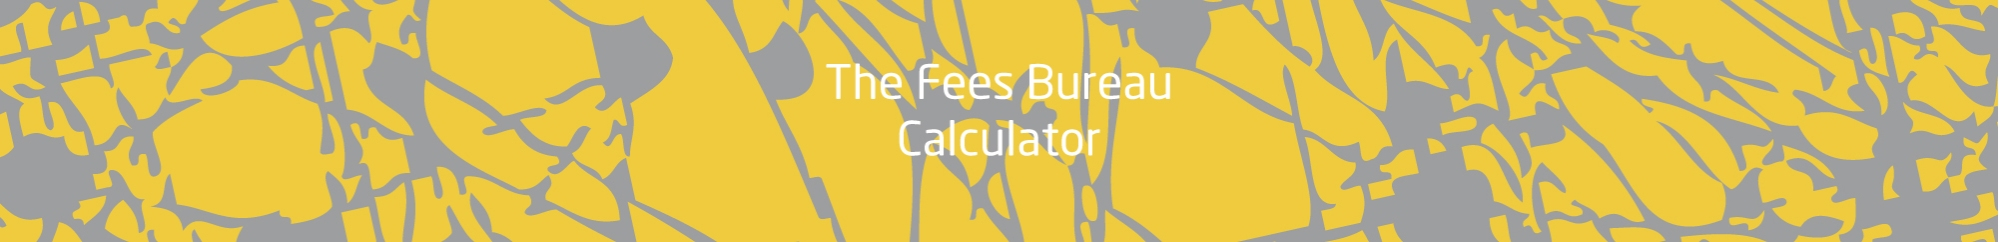 The Fees Bureau Banner